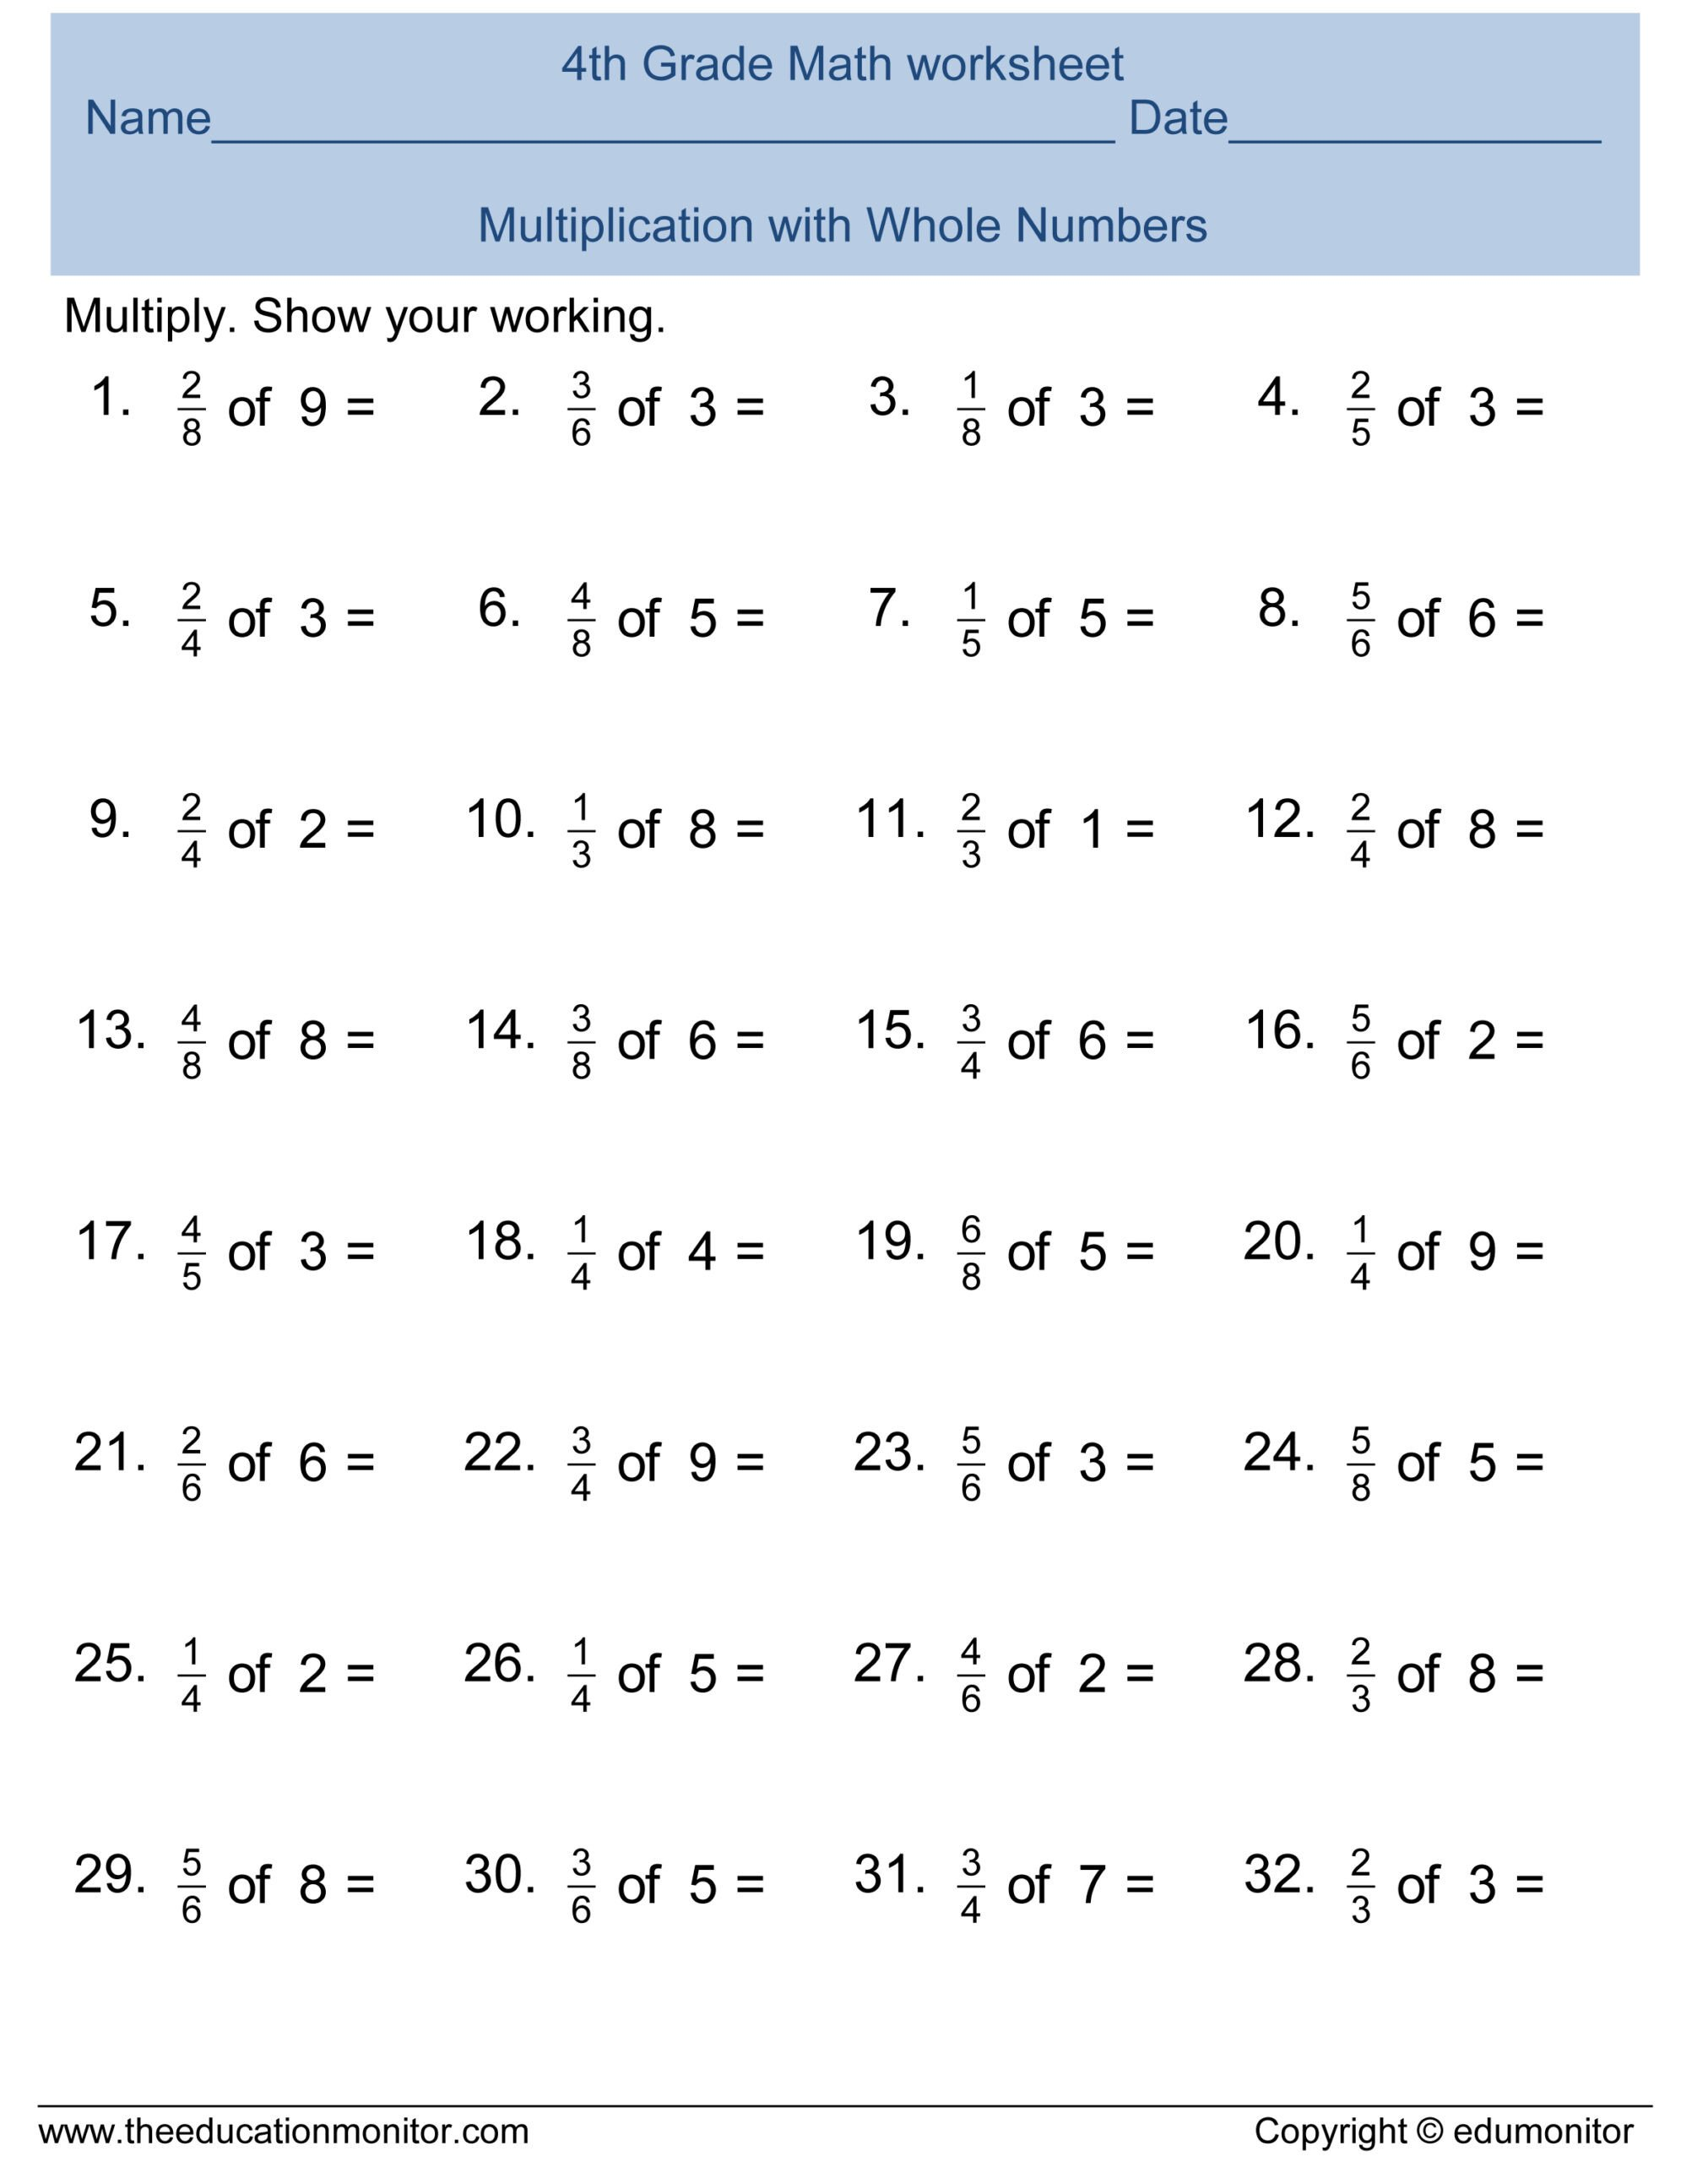 Kumon Maths Worksheets Printable Free 4th Grade Fractions Math Worksheets and Printables